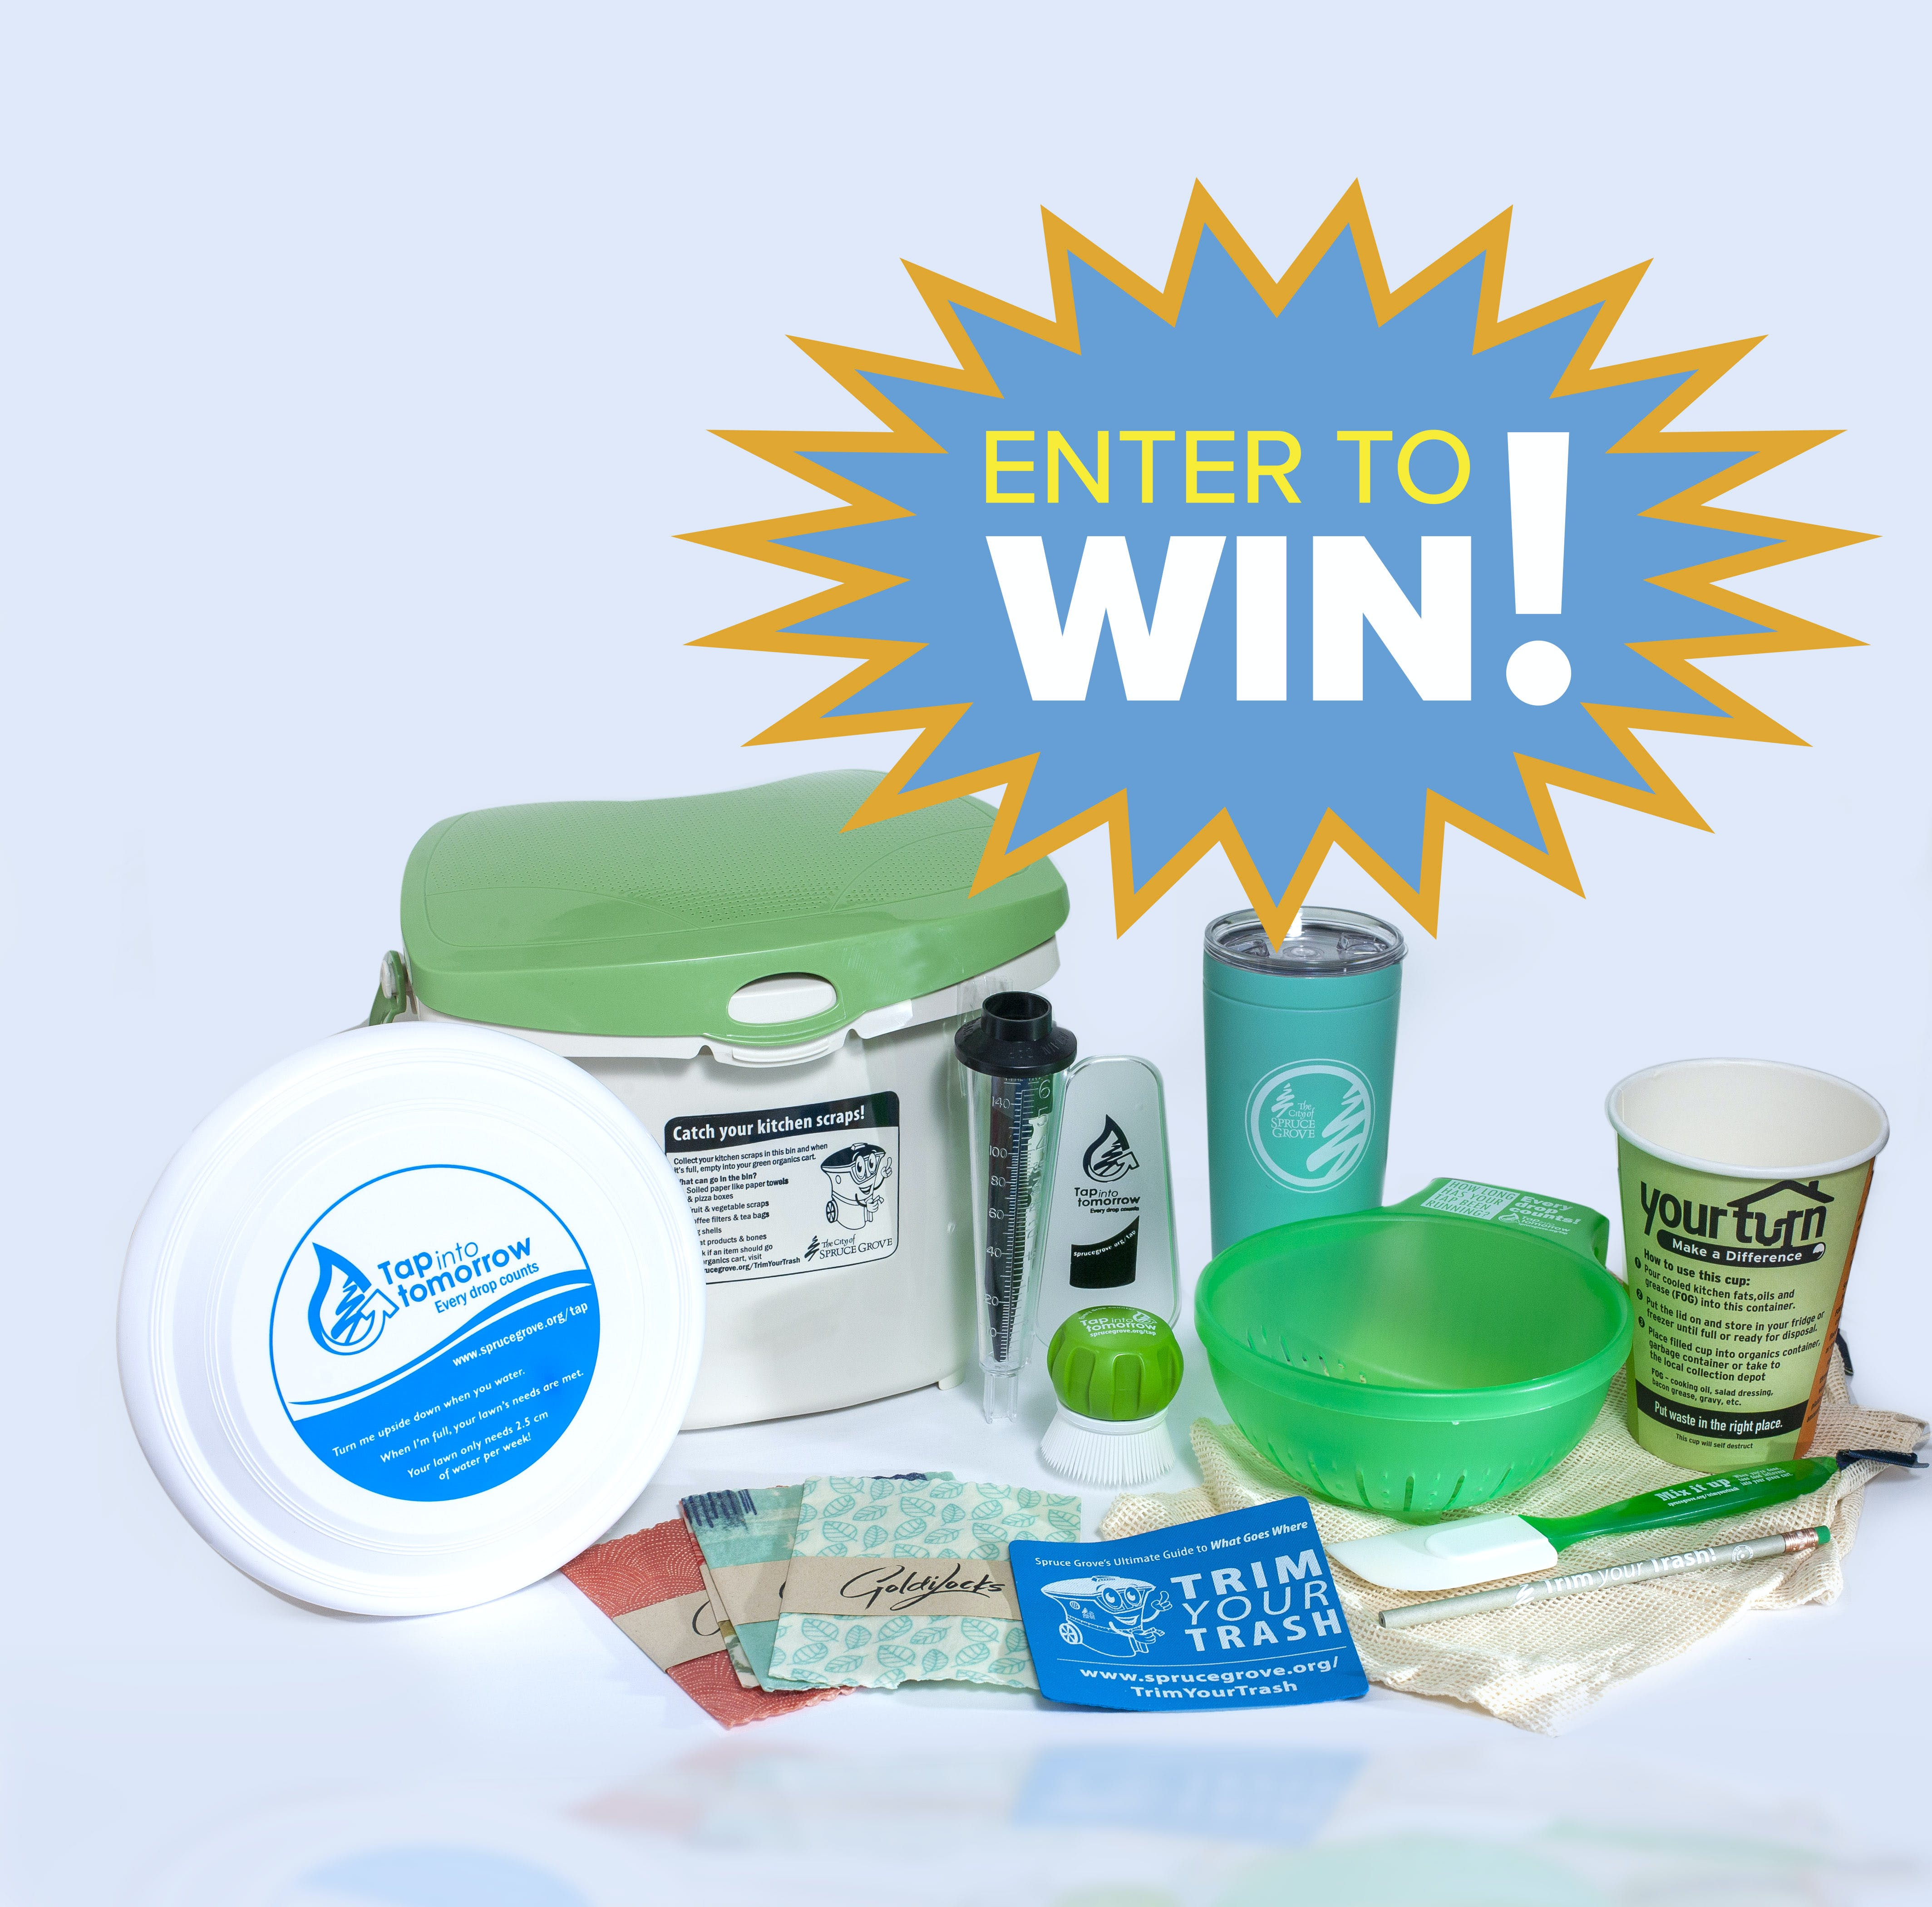 Enter to win this Spruce Grove prize pack!